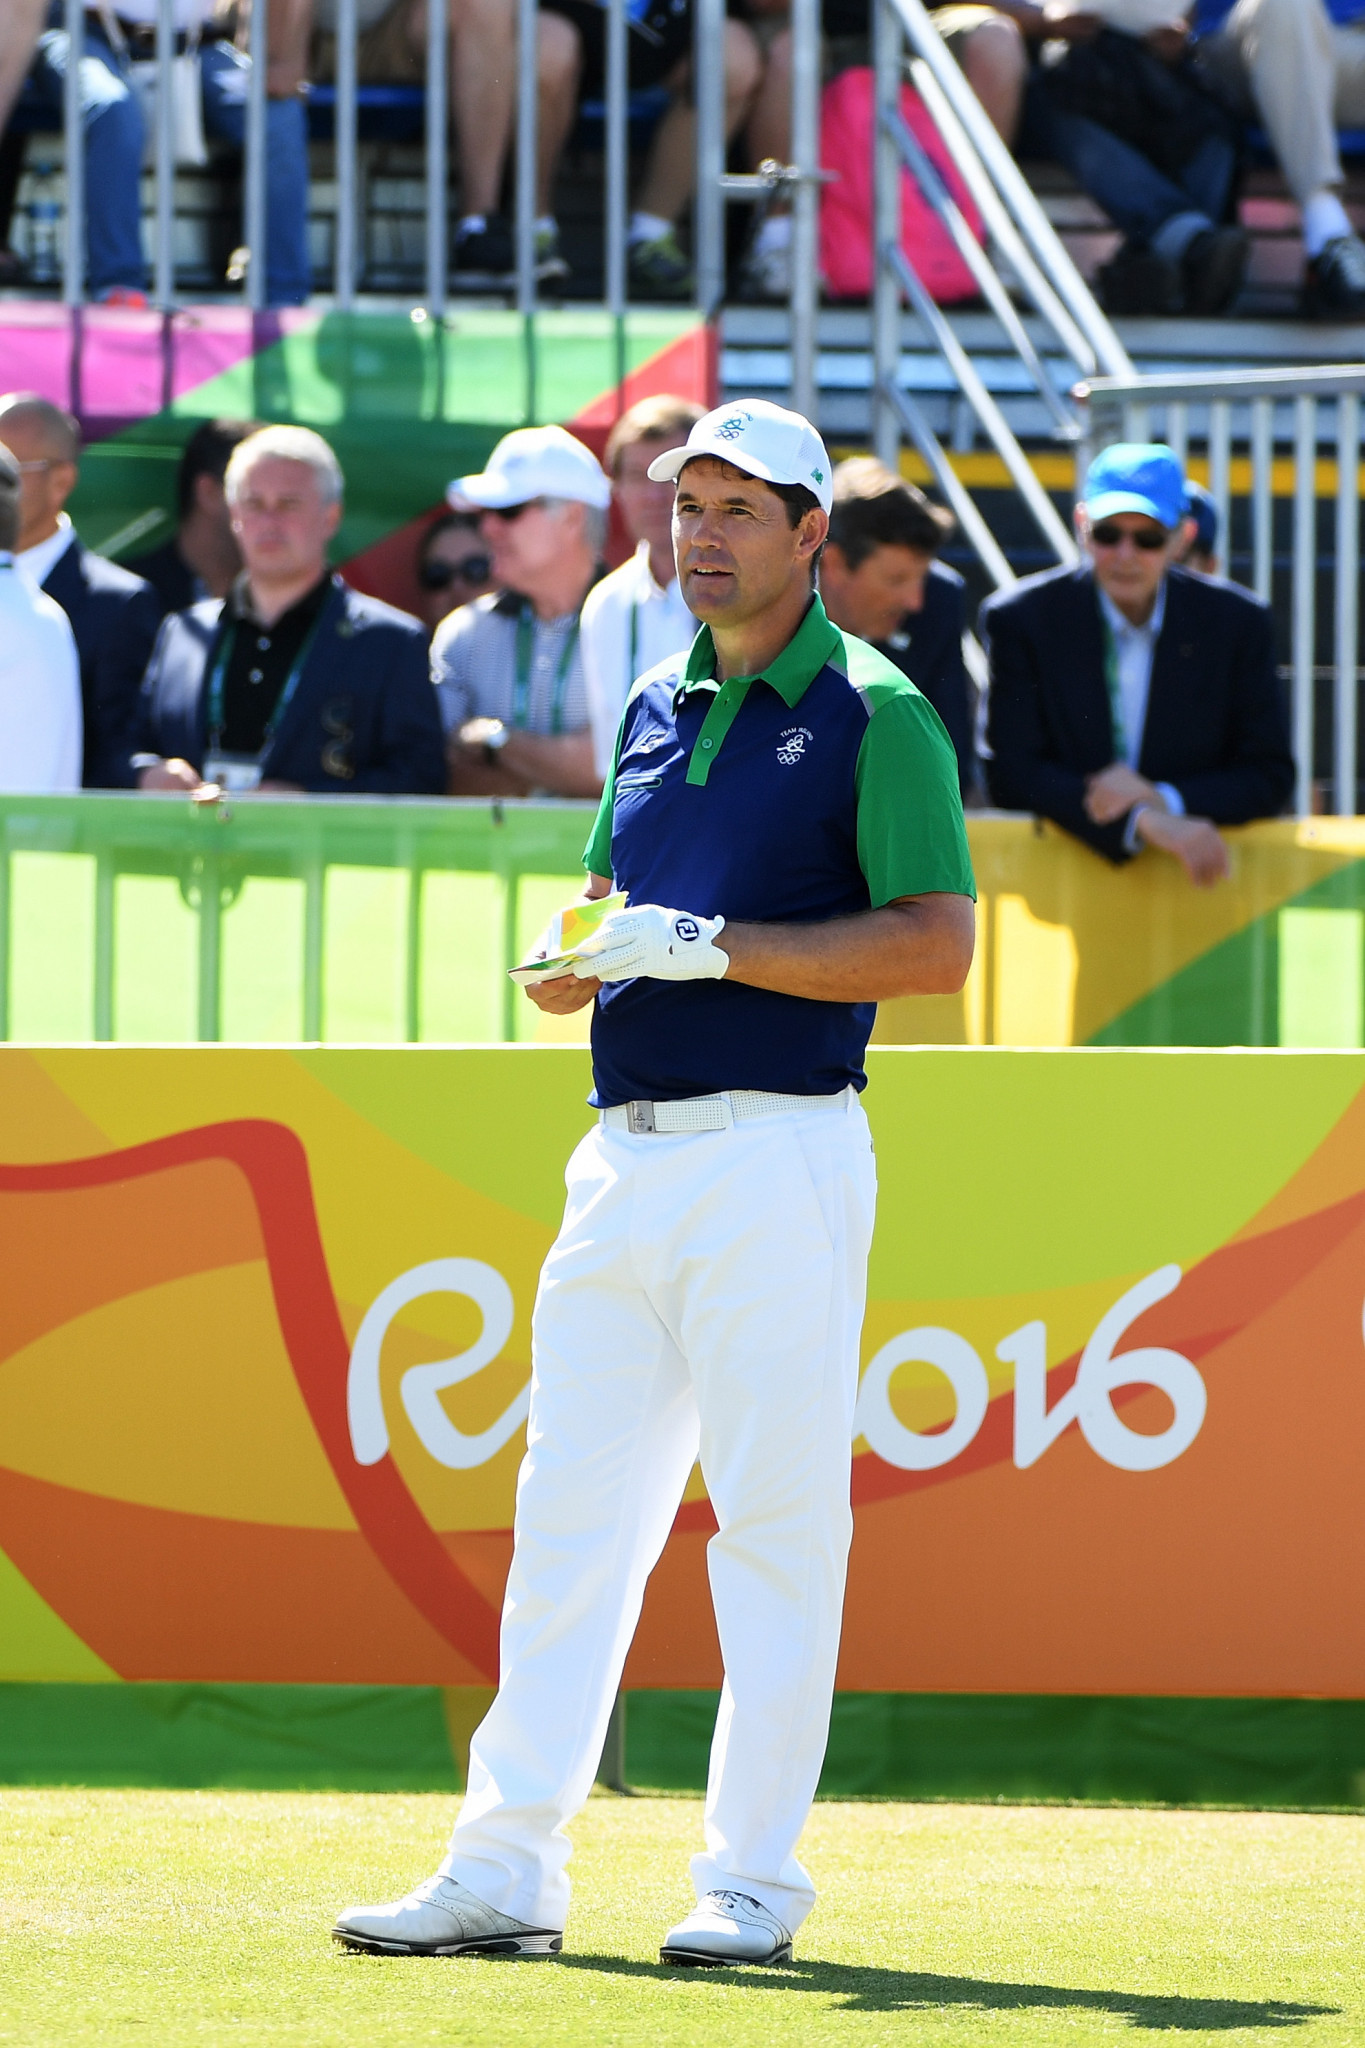 Pádraig Harrington, Open champion in 2007 and 2008, represented Ireland at Rio 2016 along with Séamus Power after Shane Lowry and Rory McIlroy turned down the opportunity ©Getty Images